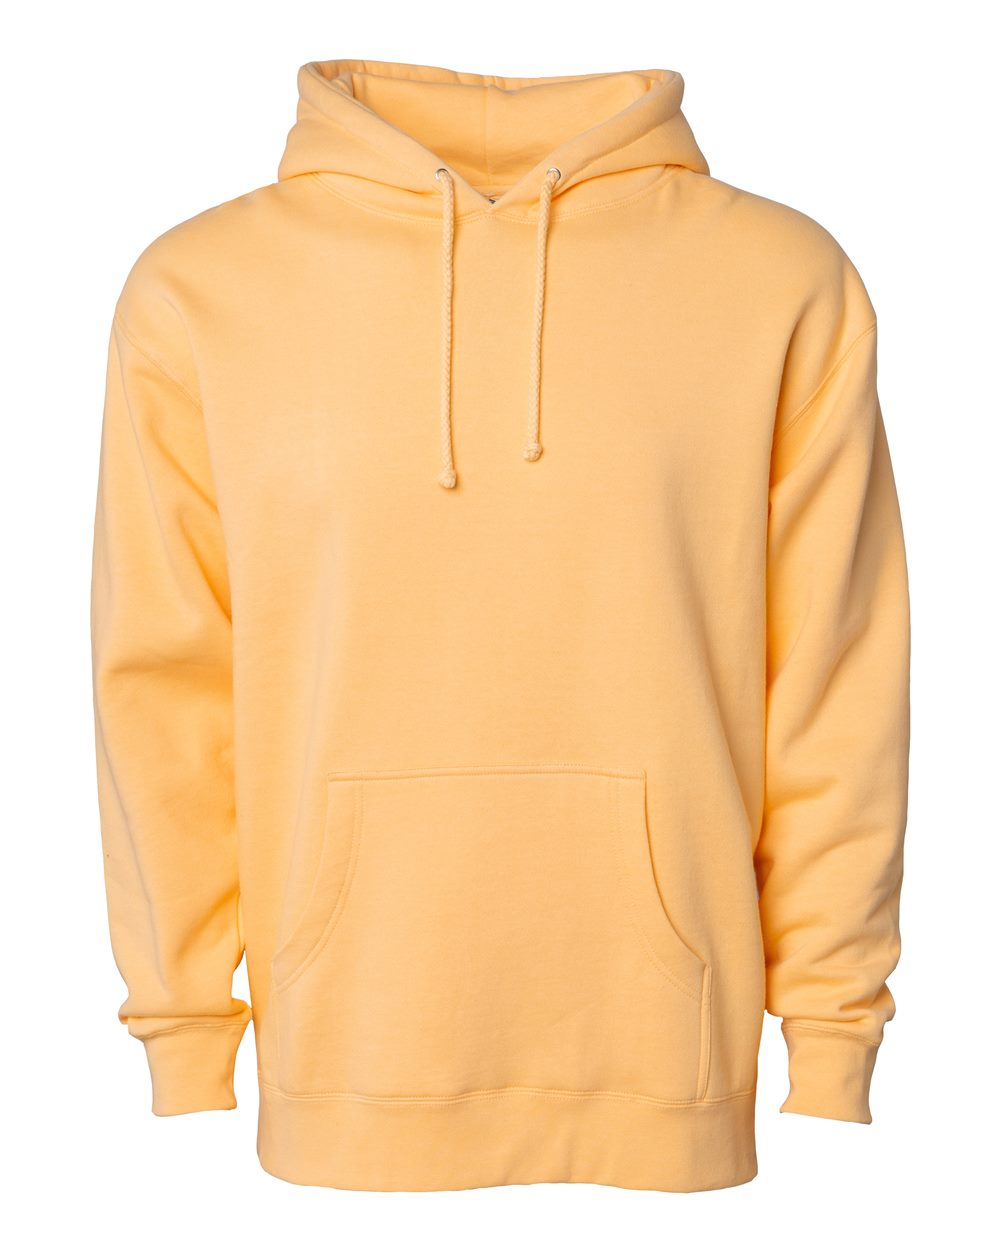 Independent-Trading-Co-Mens-Hooded-Pullover-Sweatshirt-IND4000-up-to-3XL miniature 57